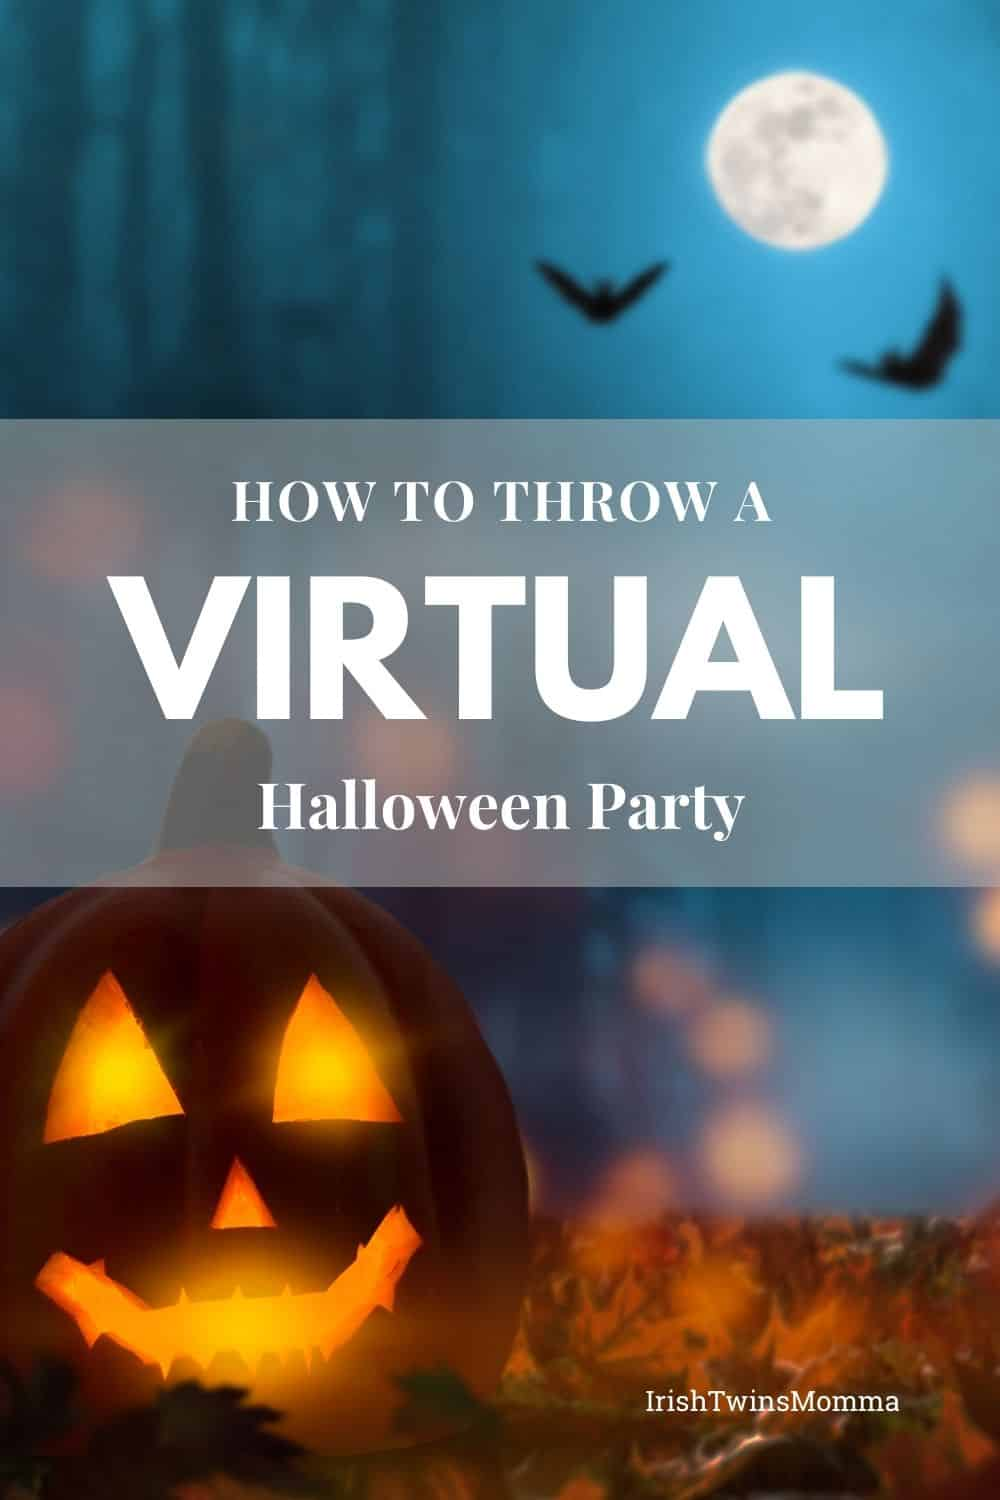 Spooky Times_ How To Throw a Virtual Halloween Party